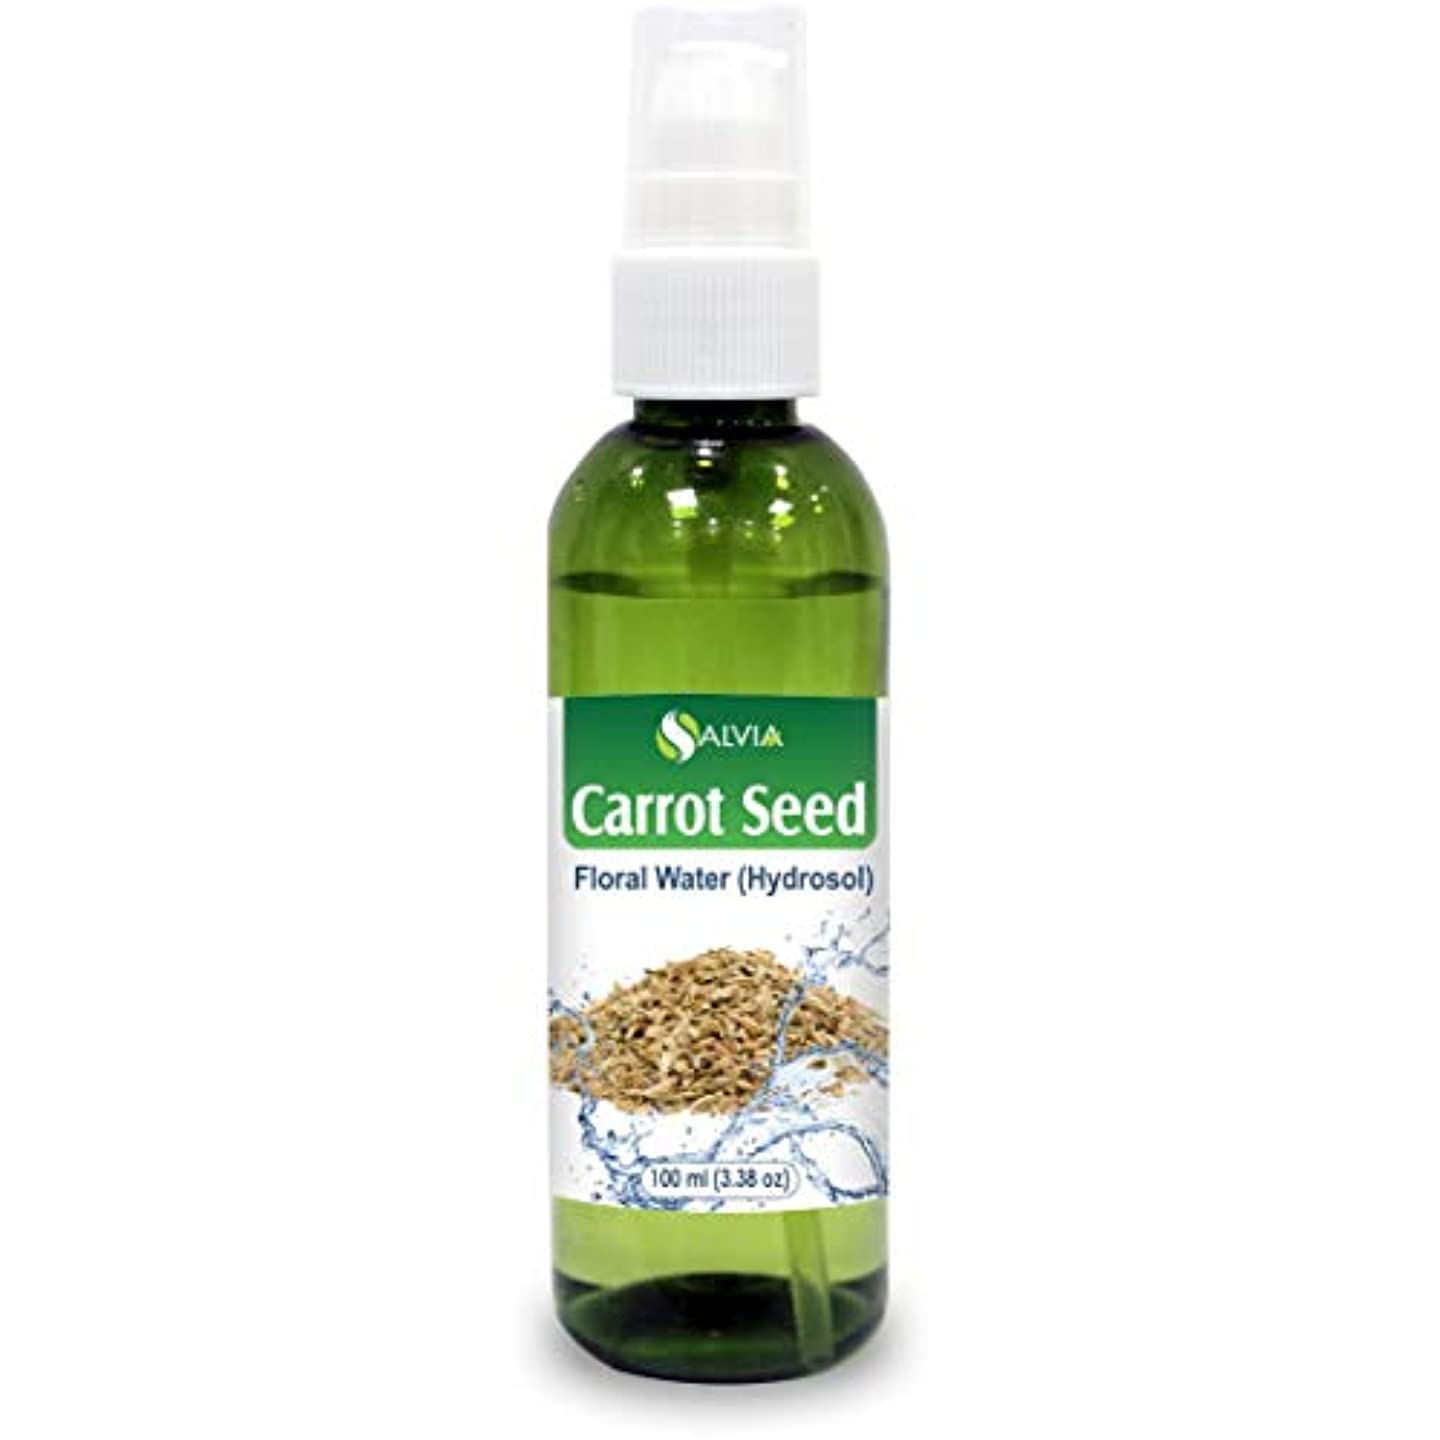 マルクス主義者コンプライアンス最終的にCarrot Seed Floral Water Floral Water 100ml (Hydrosol) 100% Pure And Natural